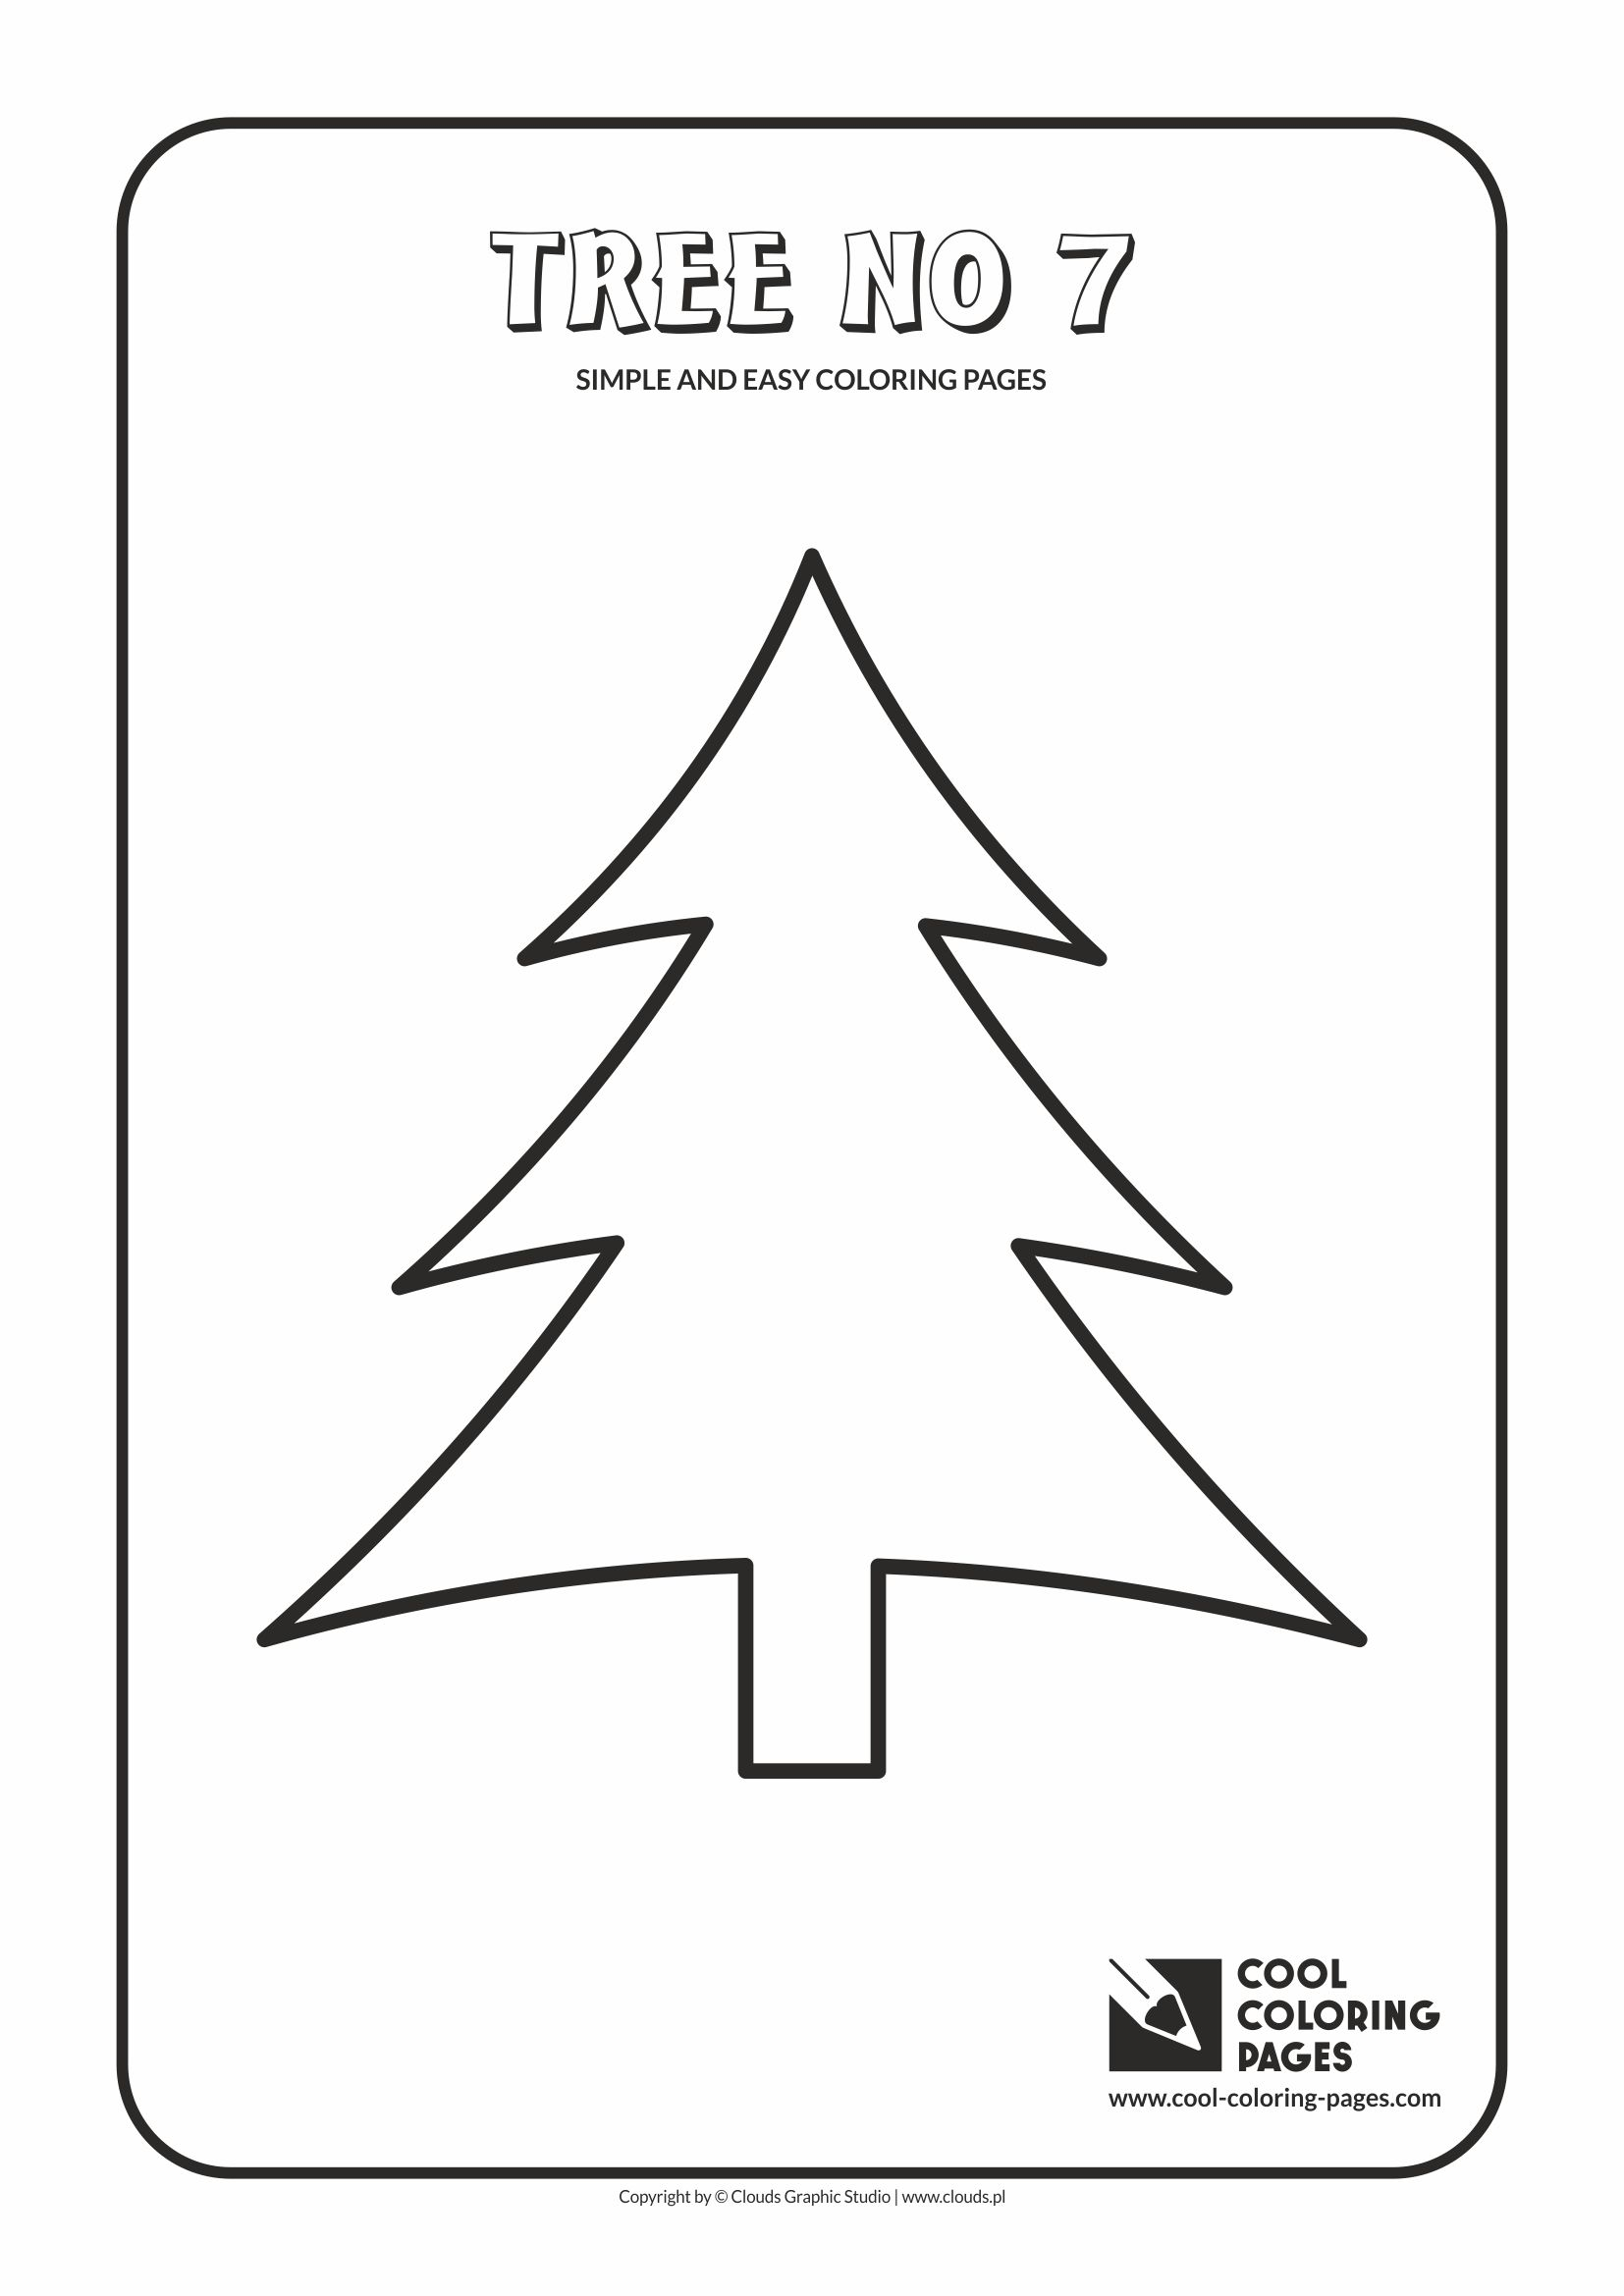 Simple and easy coloring pages for toddlers - Tree no 7